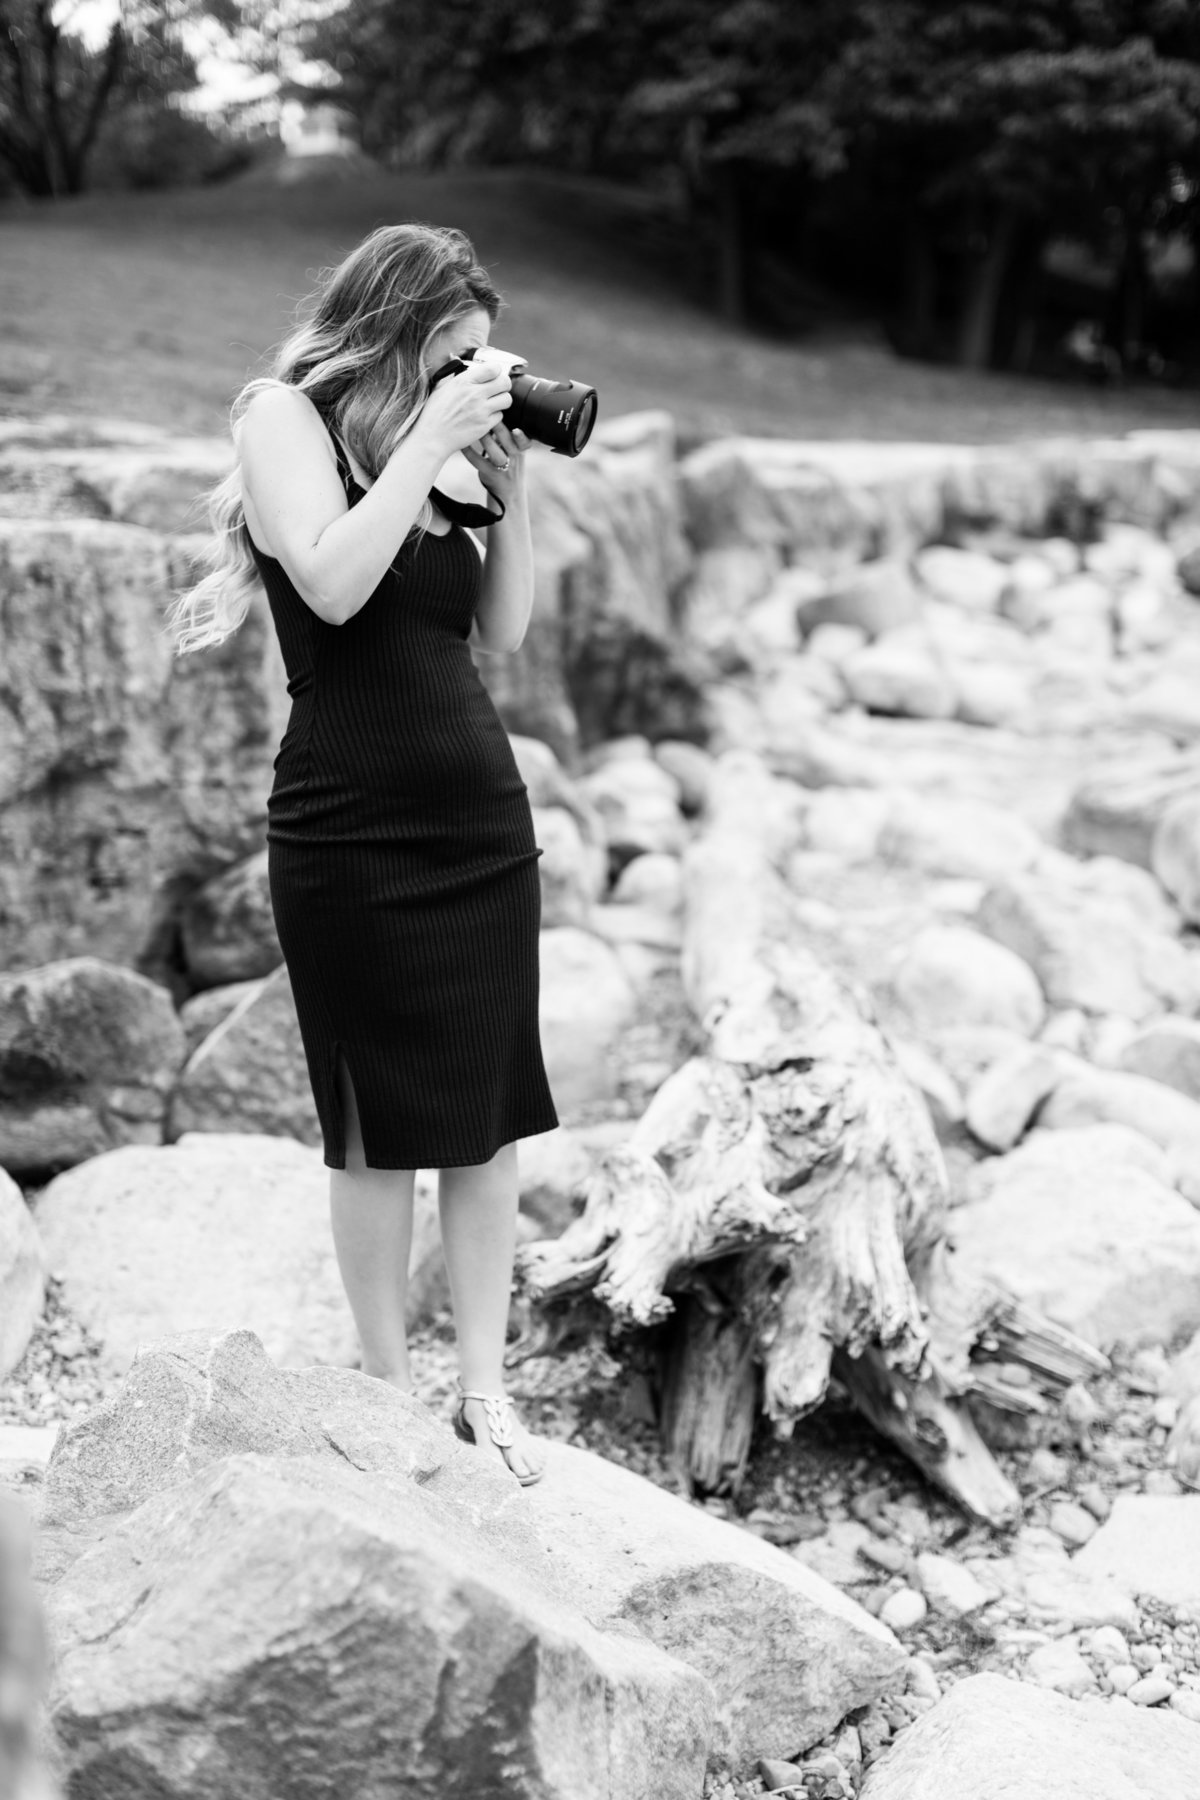 niagara-on-the-lake-wedding-photographer-andrea-linn-6 copy